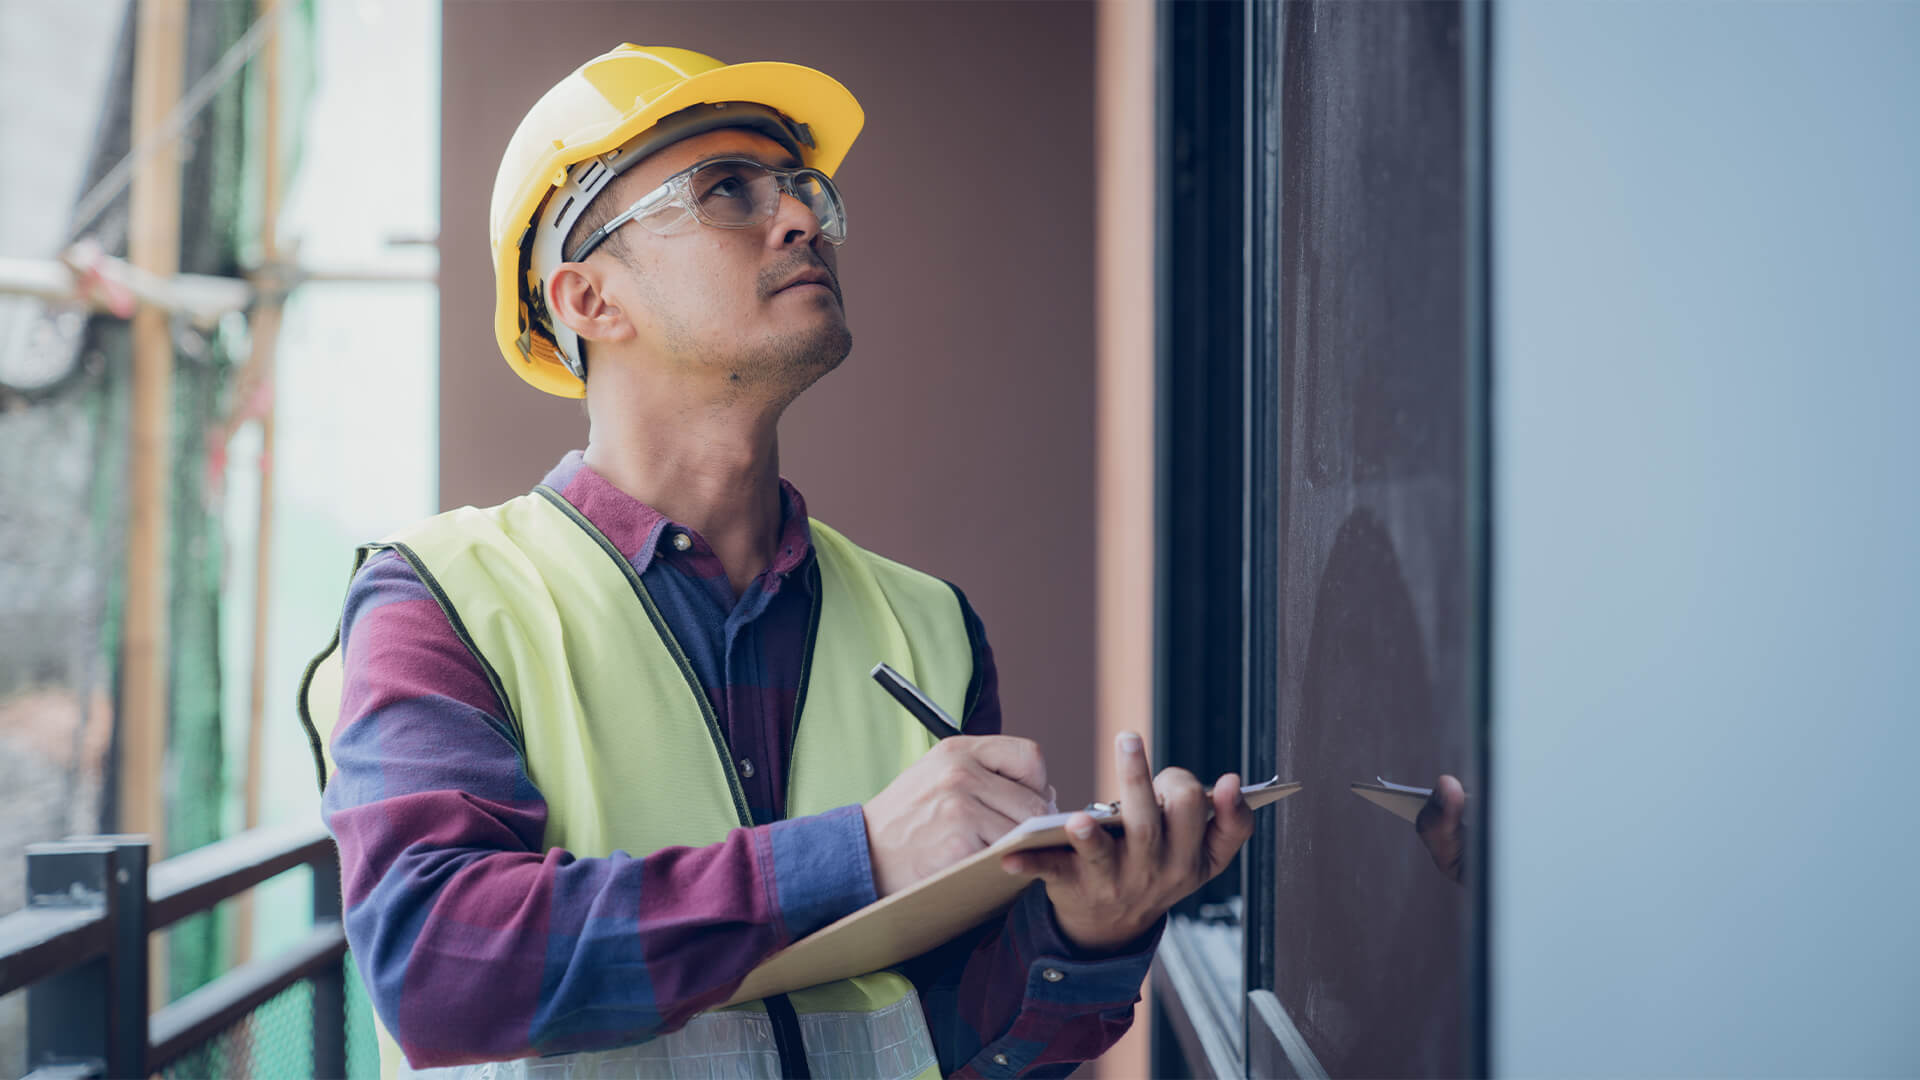 Foreman on a build site inspecting a window